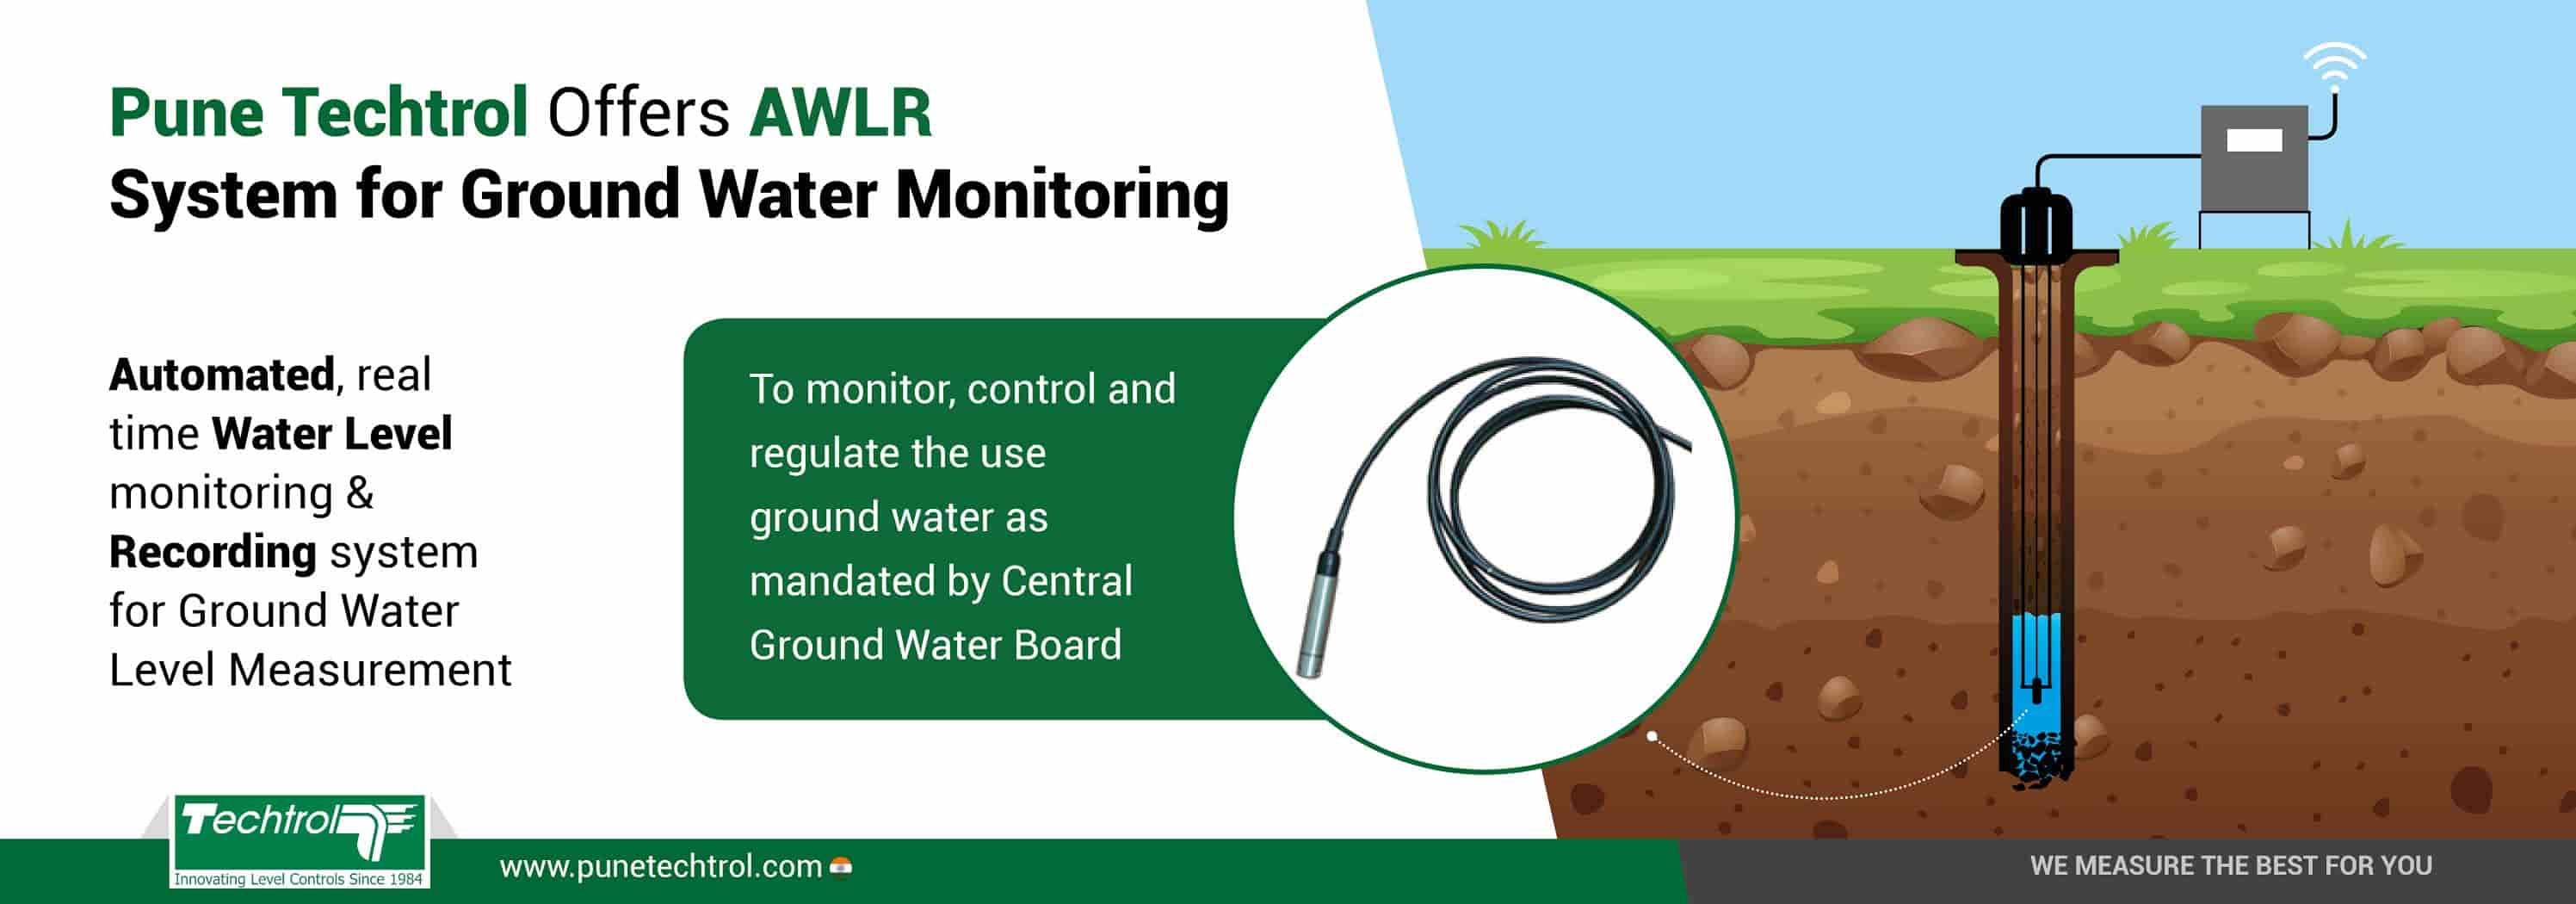 Techtrol AWLR system for Ground Water Level Measurement